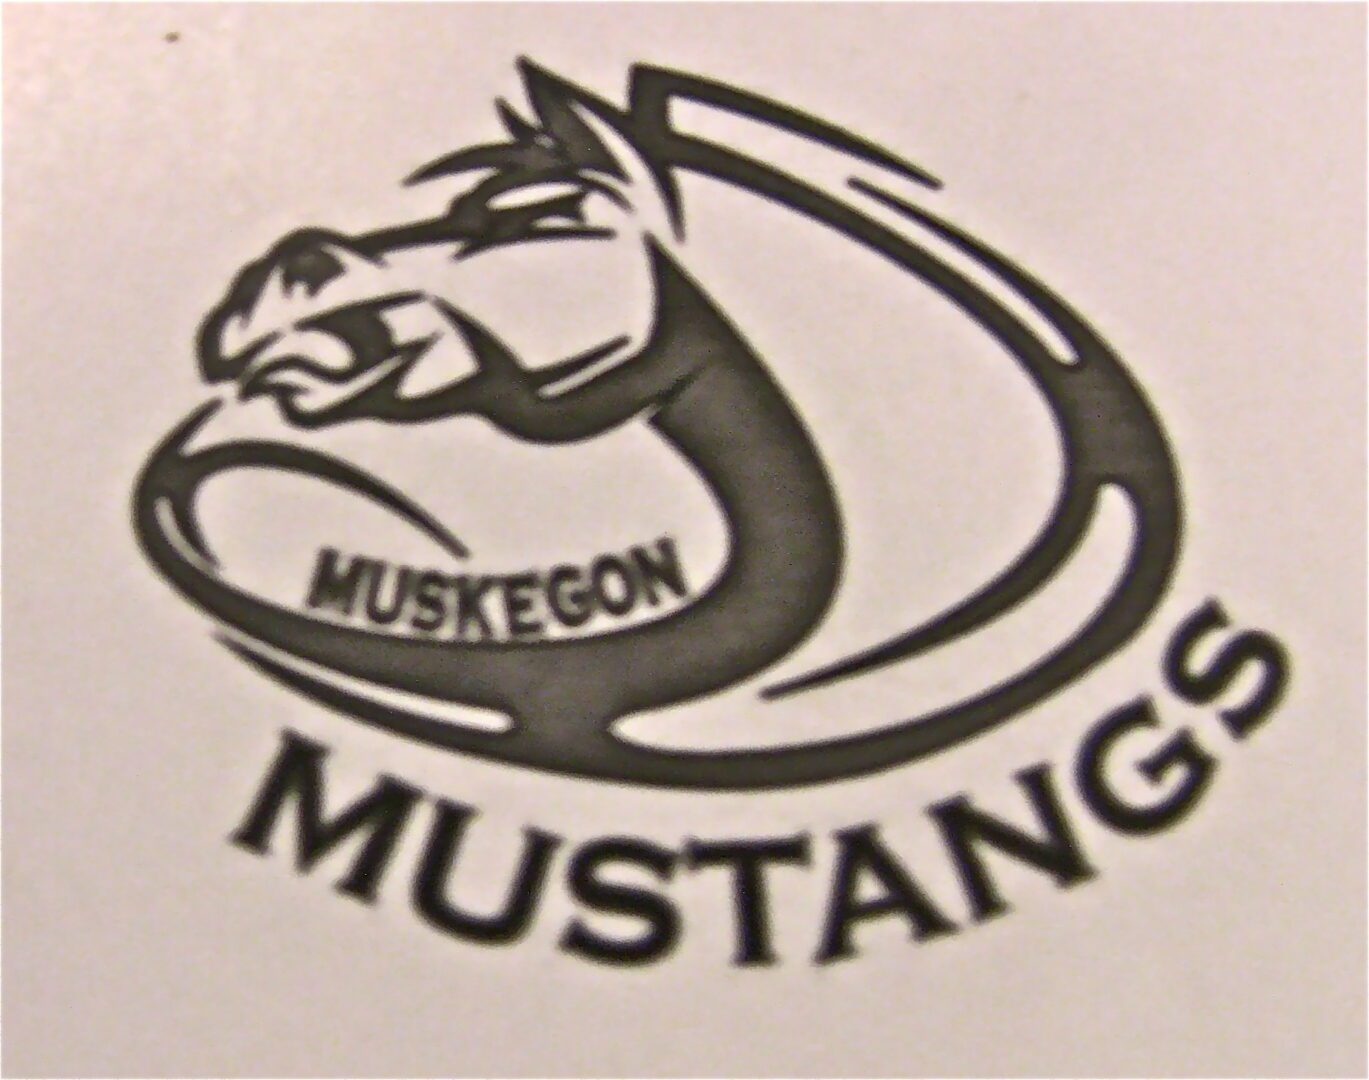 Muskegon Mustangs kick up 2014 season with three straight wins, play at home on Saturday